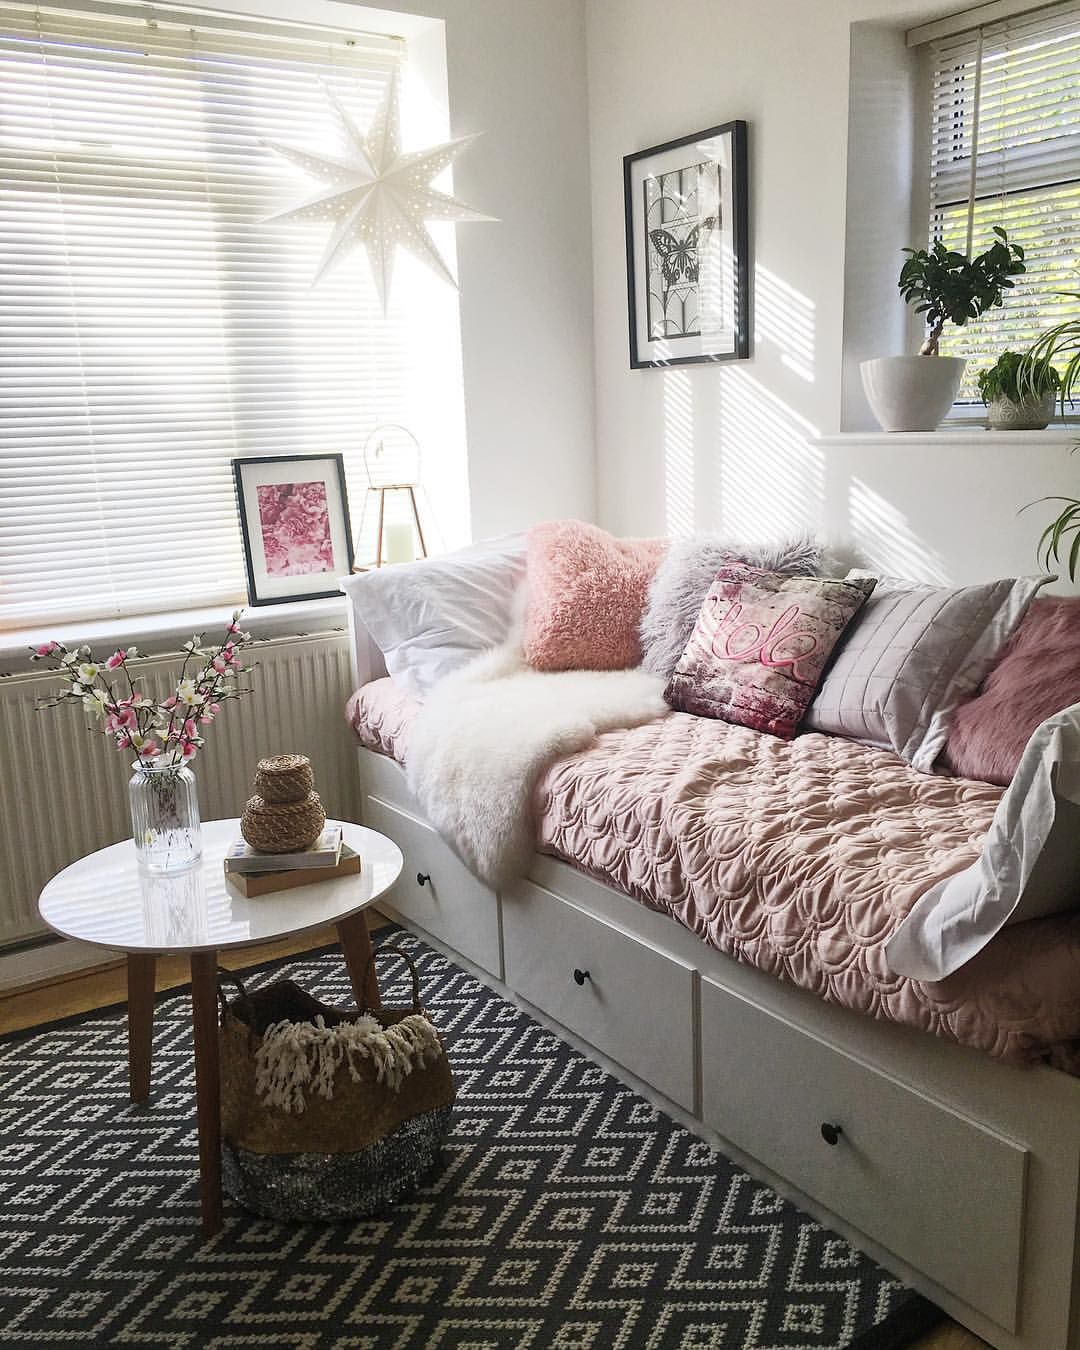 Chambre De Boyden Pin By Joanne A On Girls Bedroom In 2019 Daybed Room Room Decor